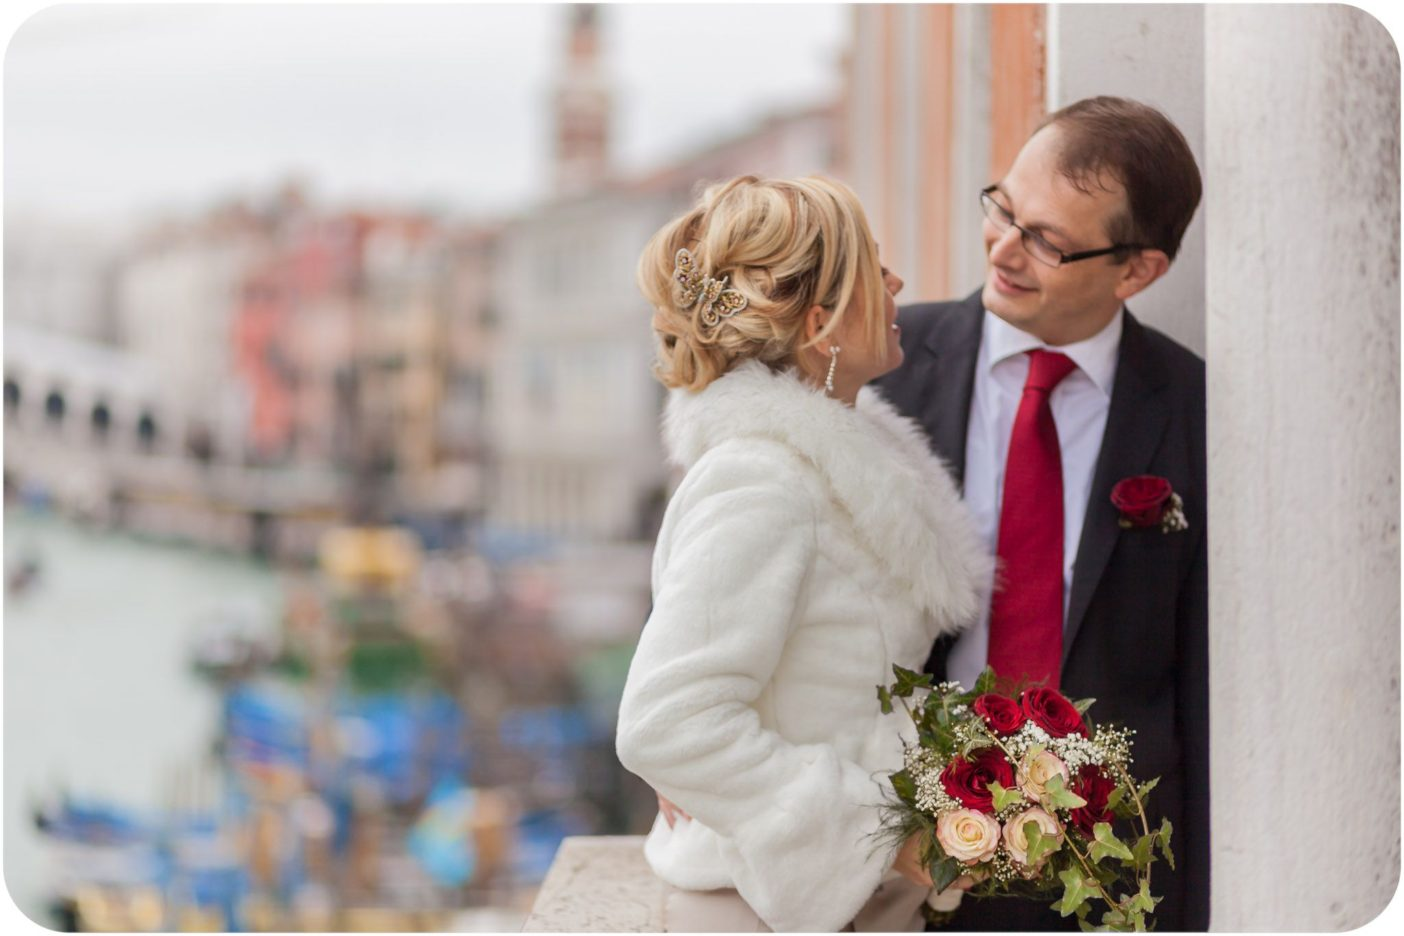 Autumn and rain worked just as a beautiful frame for this couple choosing to marry in Venice surrounded by a few relatives and many elegant details